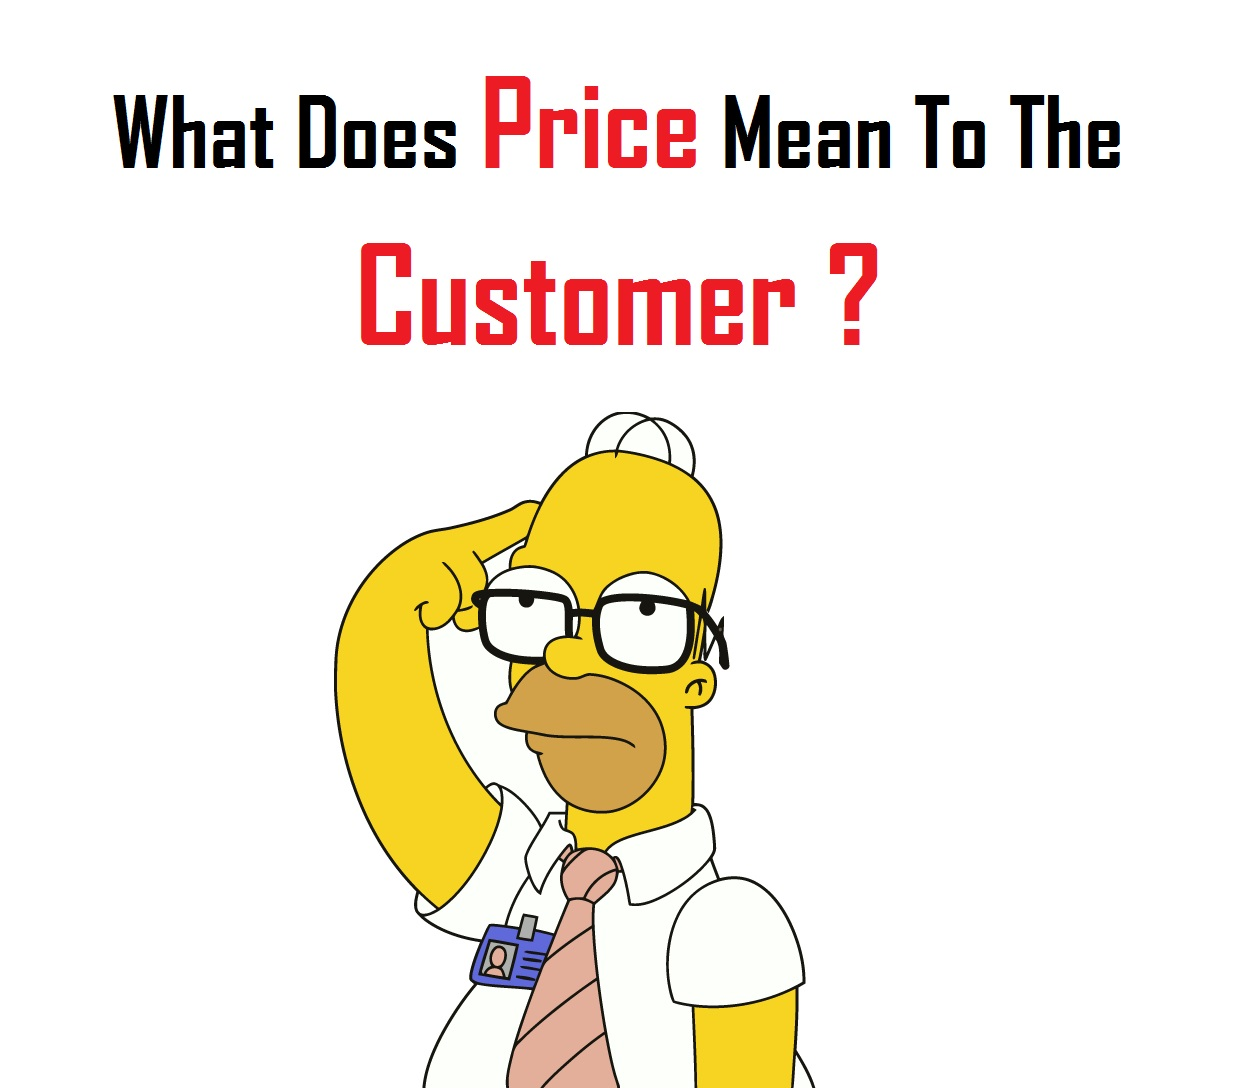 Whad does price mean to the customer